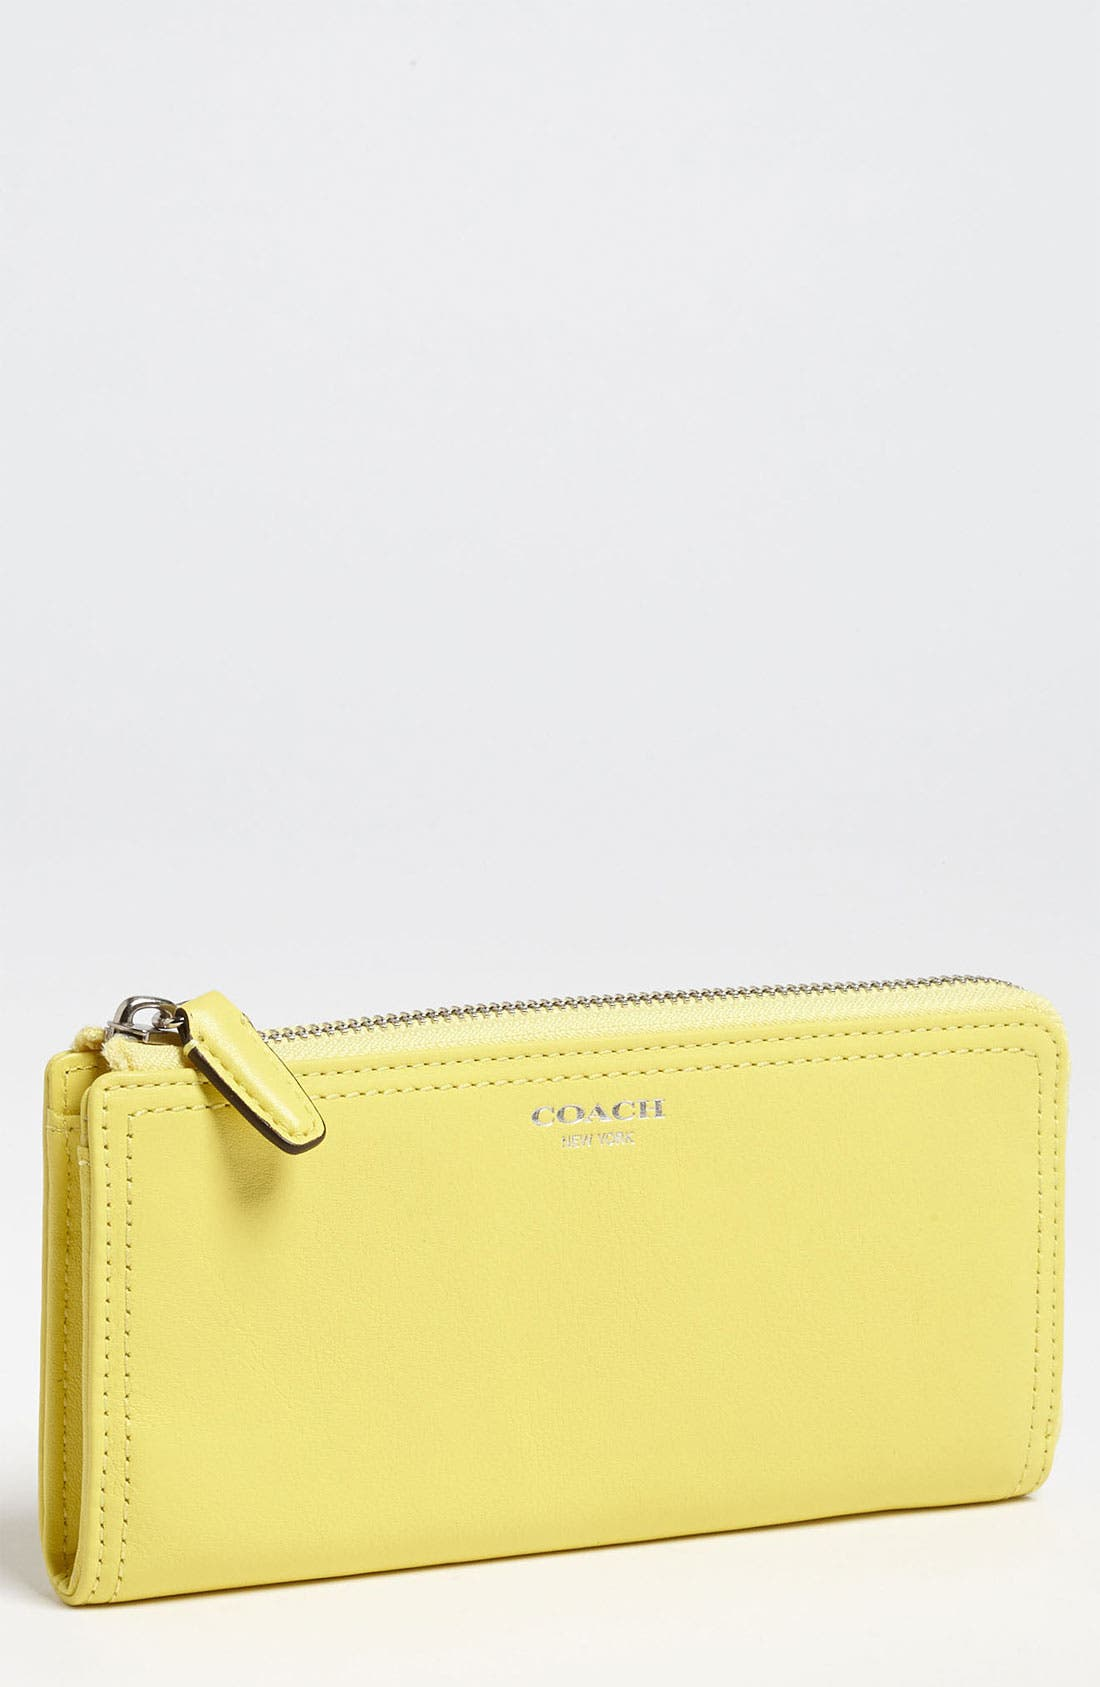 Alternate Image 1 Selected - COACH 'Legacy' Leather Wallet